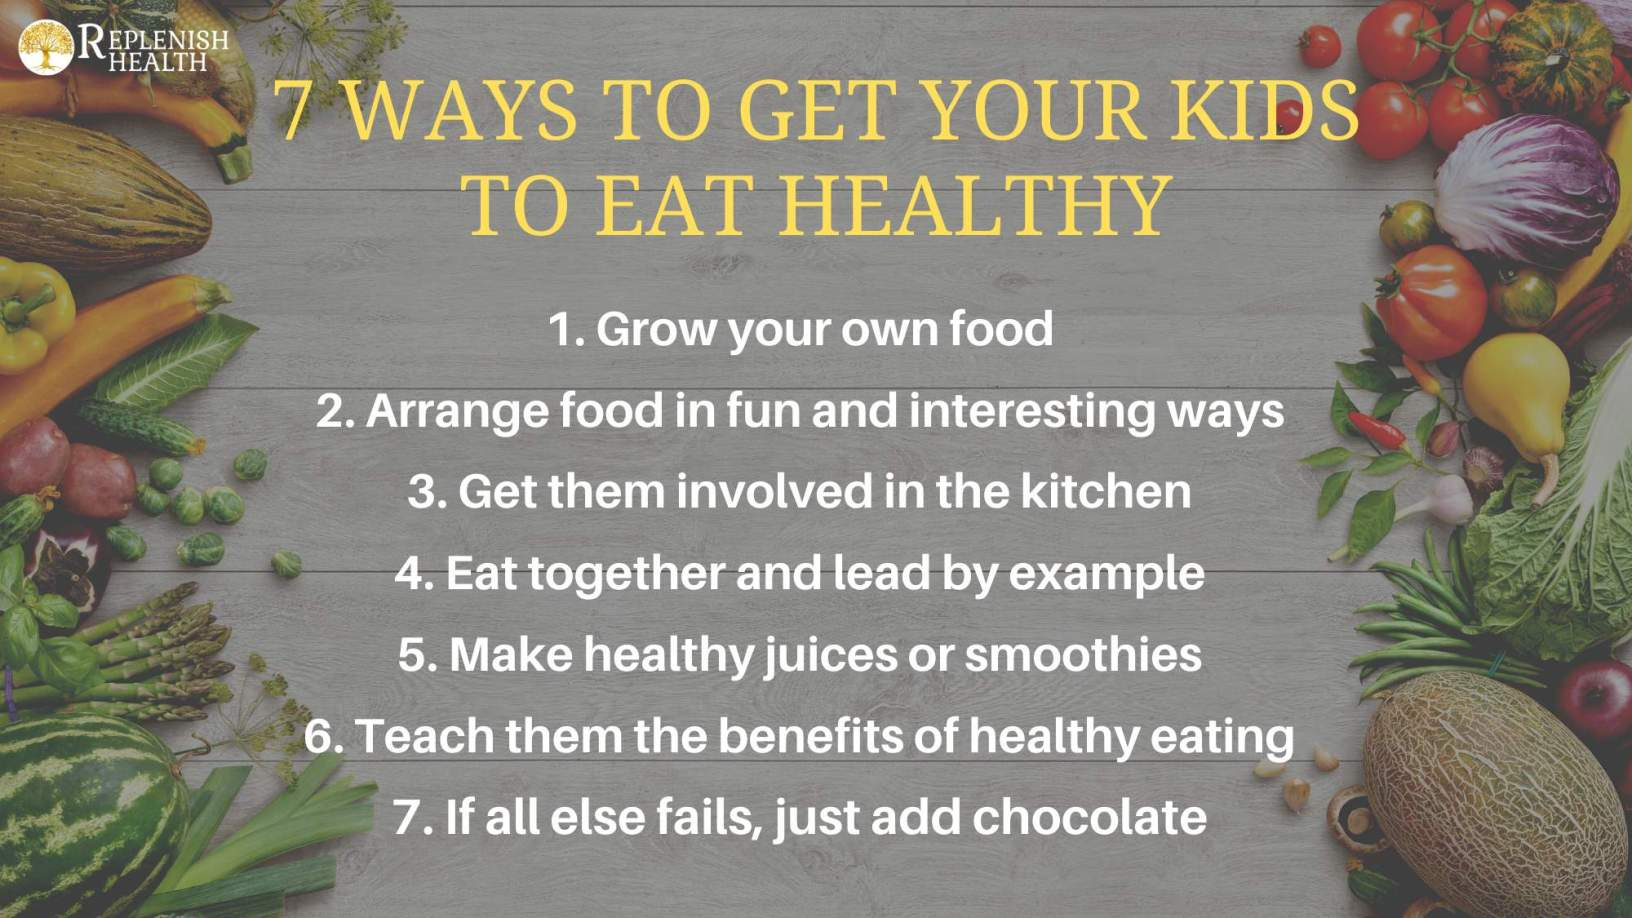 An image of 7 Ways To Get Your Kids To Eat Healthy